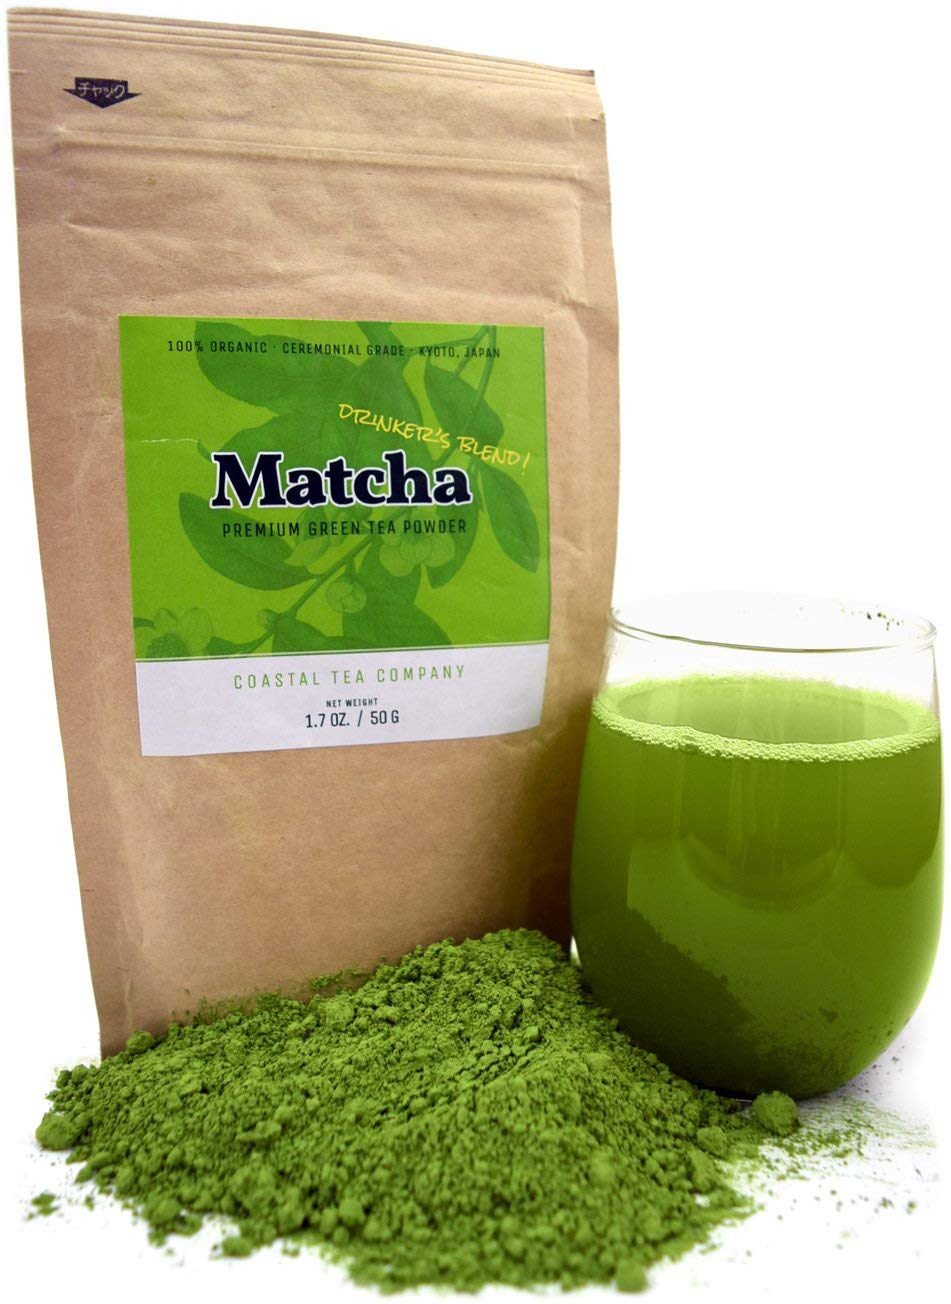 Coastal Tea Company Organic Ceremonial Matcha, Japanese Green Tea Powder, Drinking Grade, 1.7 Ounce